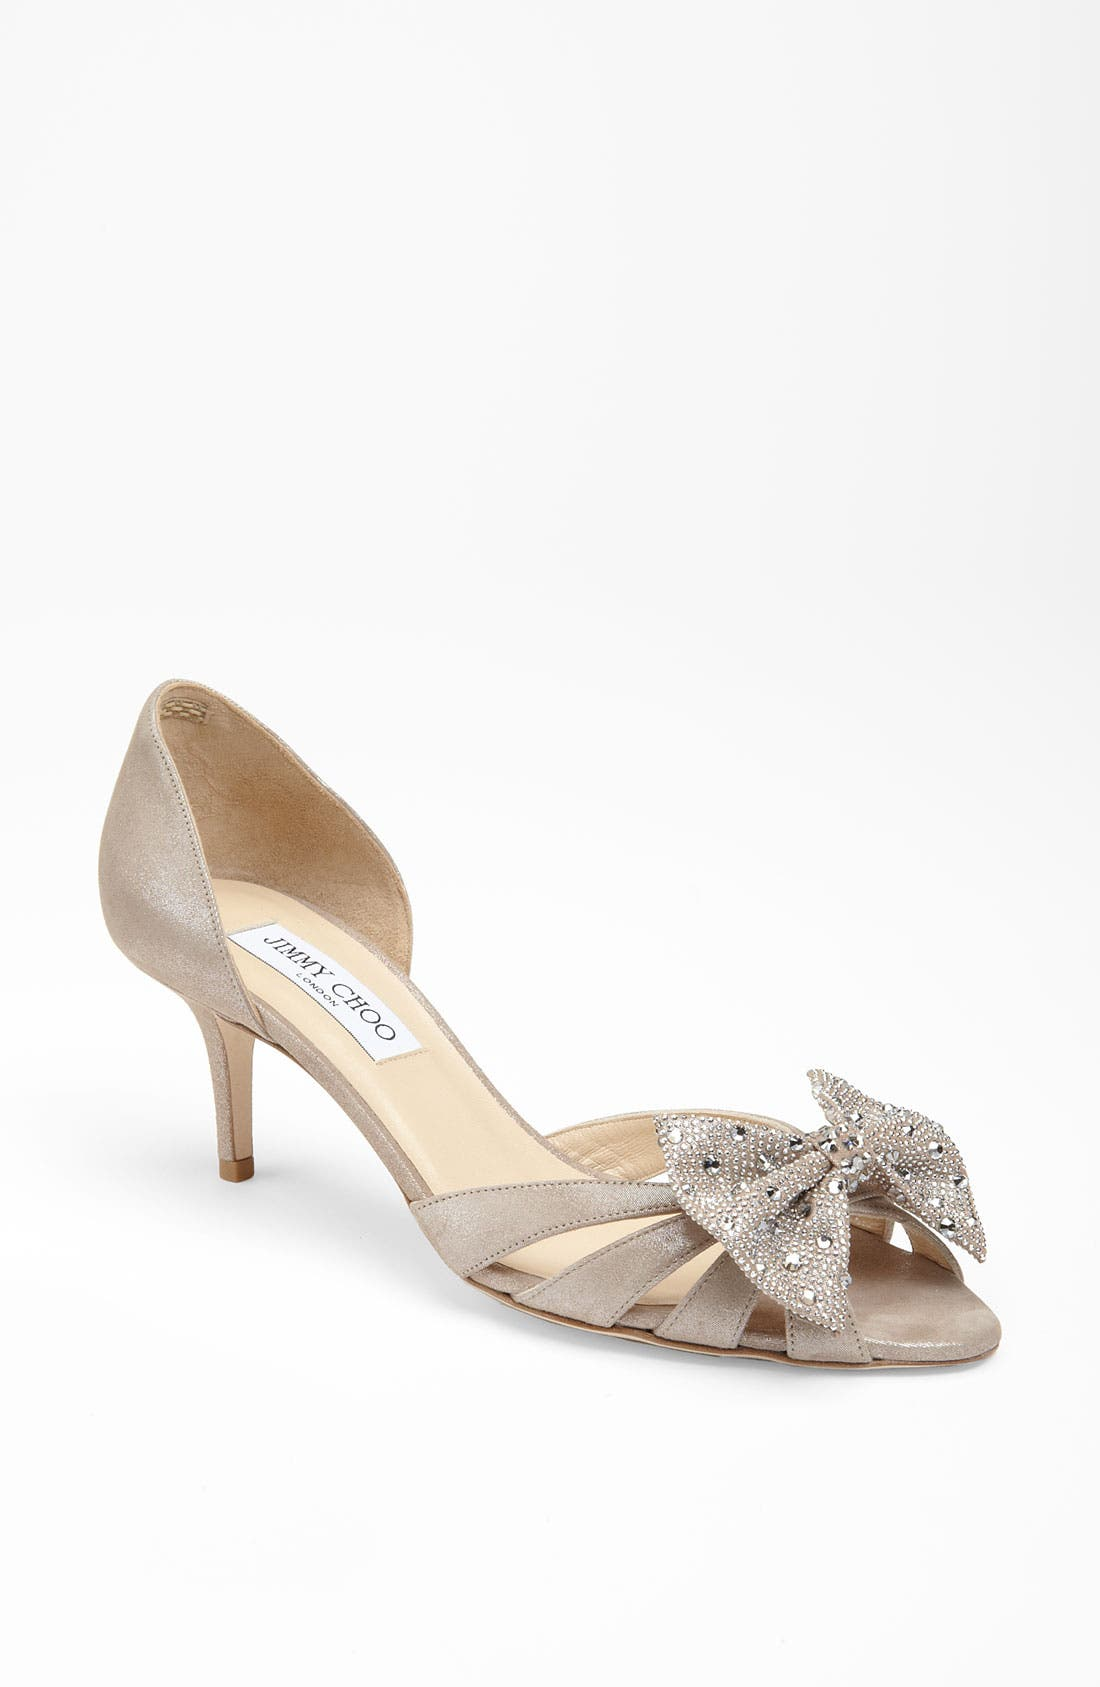 Alternate Image 1 Selected - Jimmy Choo 'Tabina' Pump